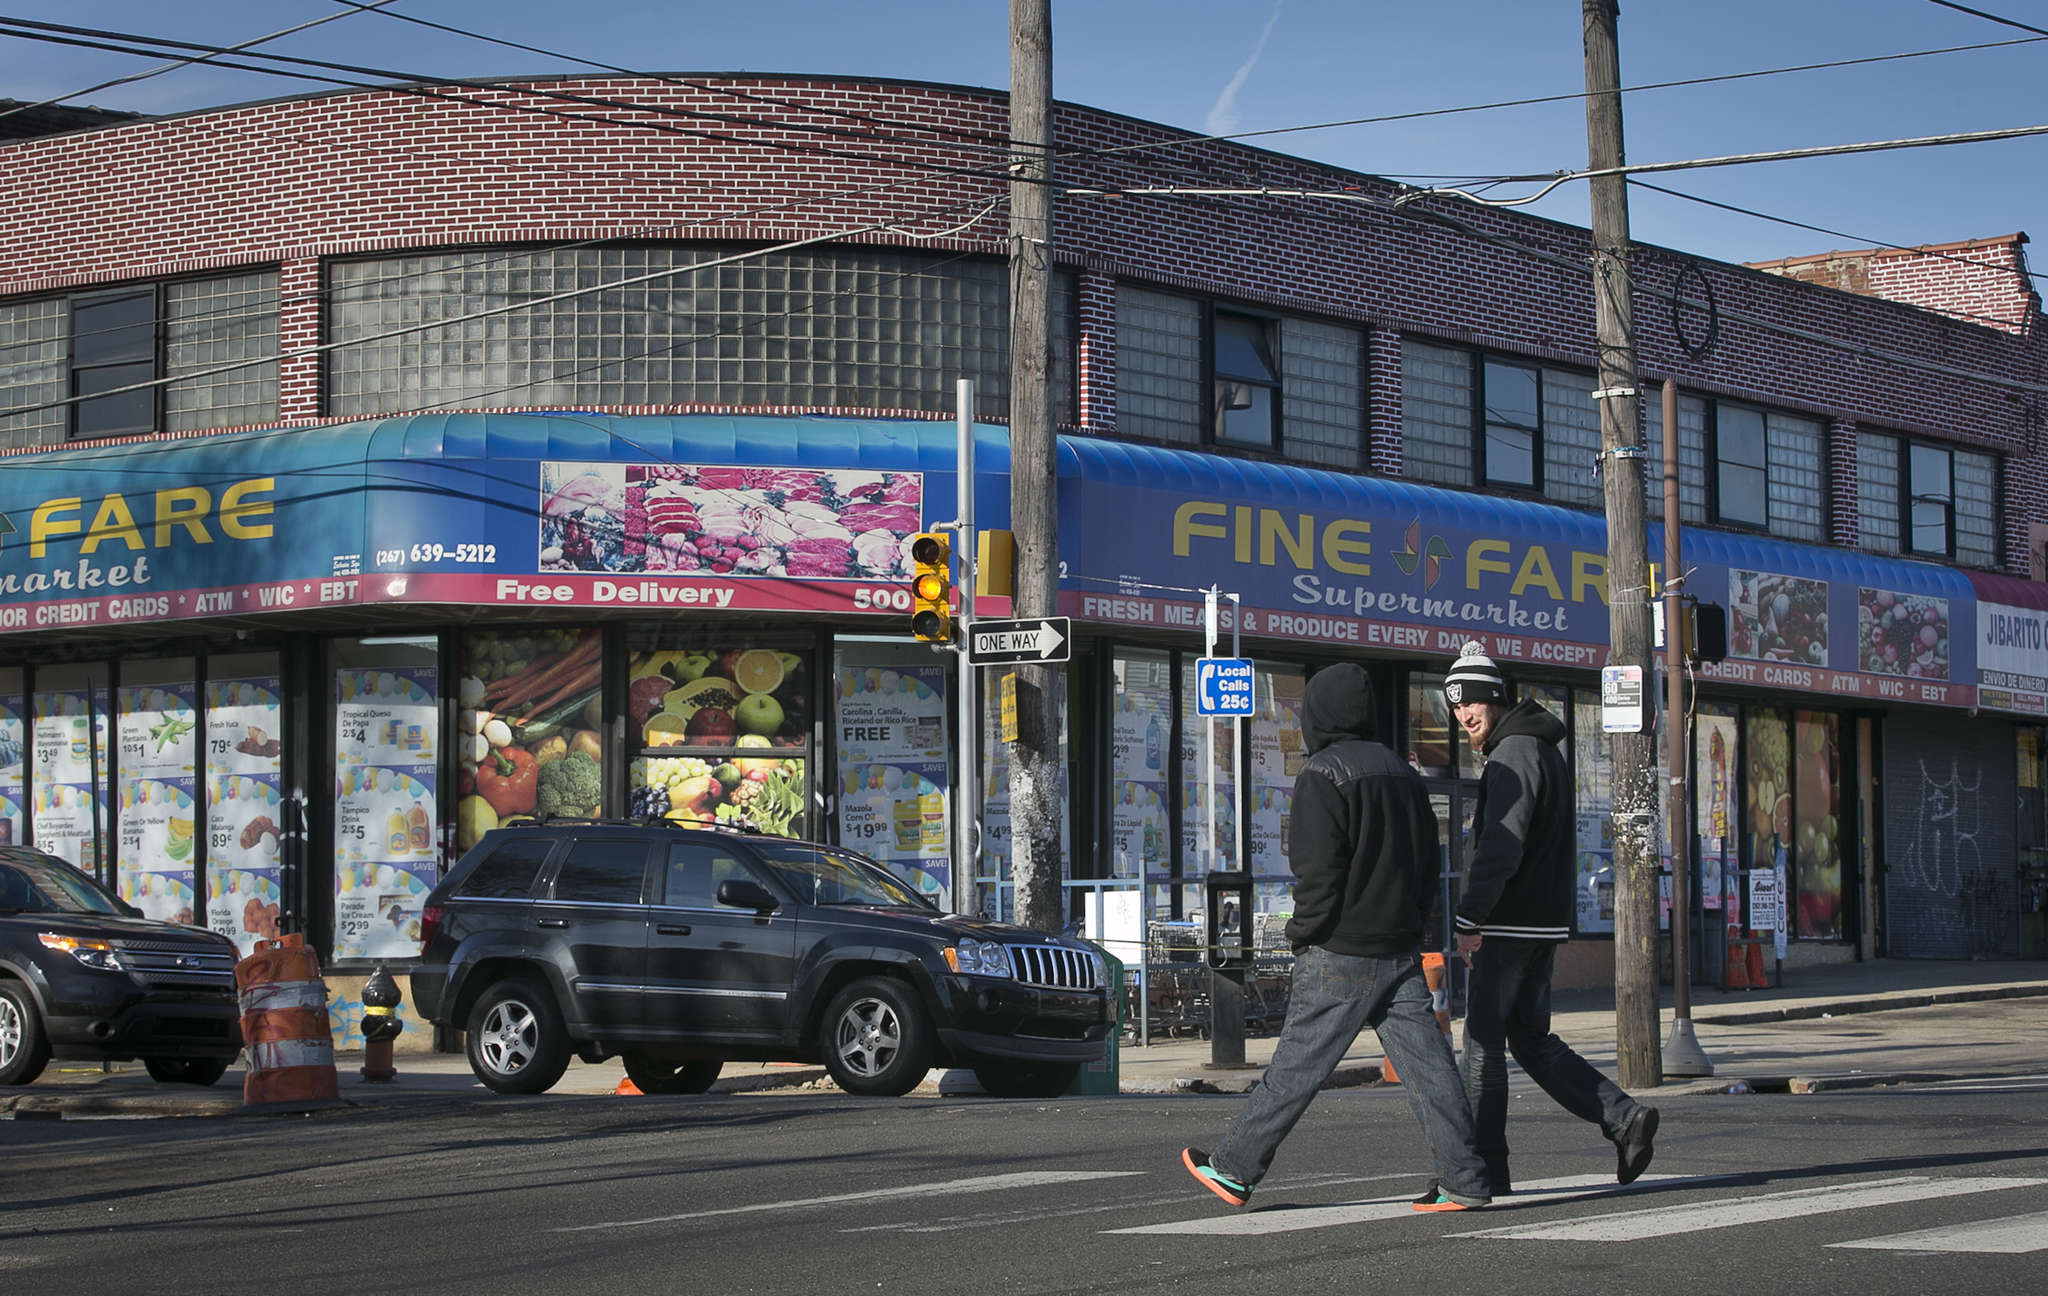 There´s a Fine Fare market two blocks from where ground was broken on a sprawling shopping center at Second and Allegheny, to be anchored by a Sav-A-Lot. Another Sav-A-Lot is less than a mile away.